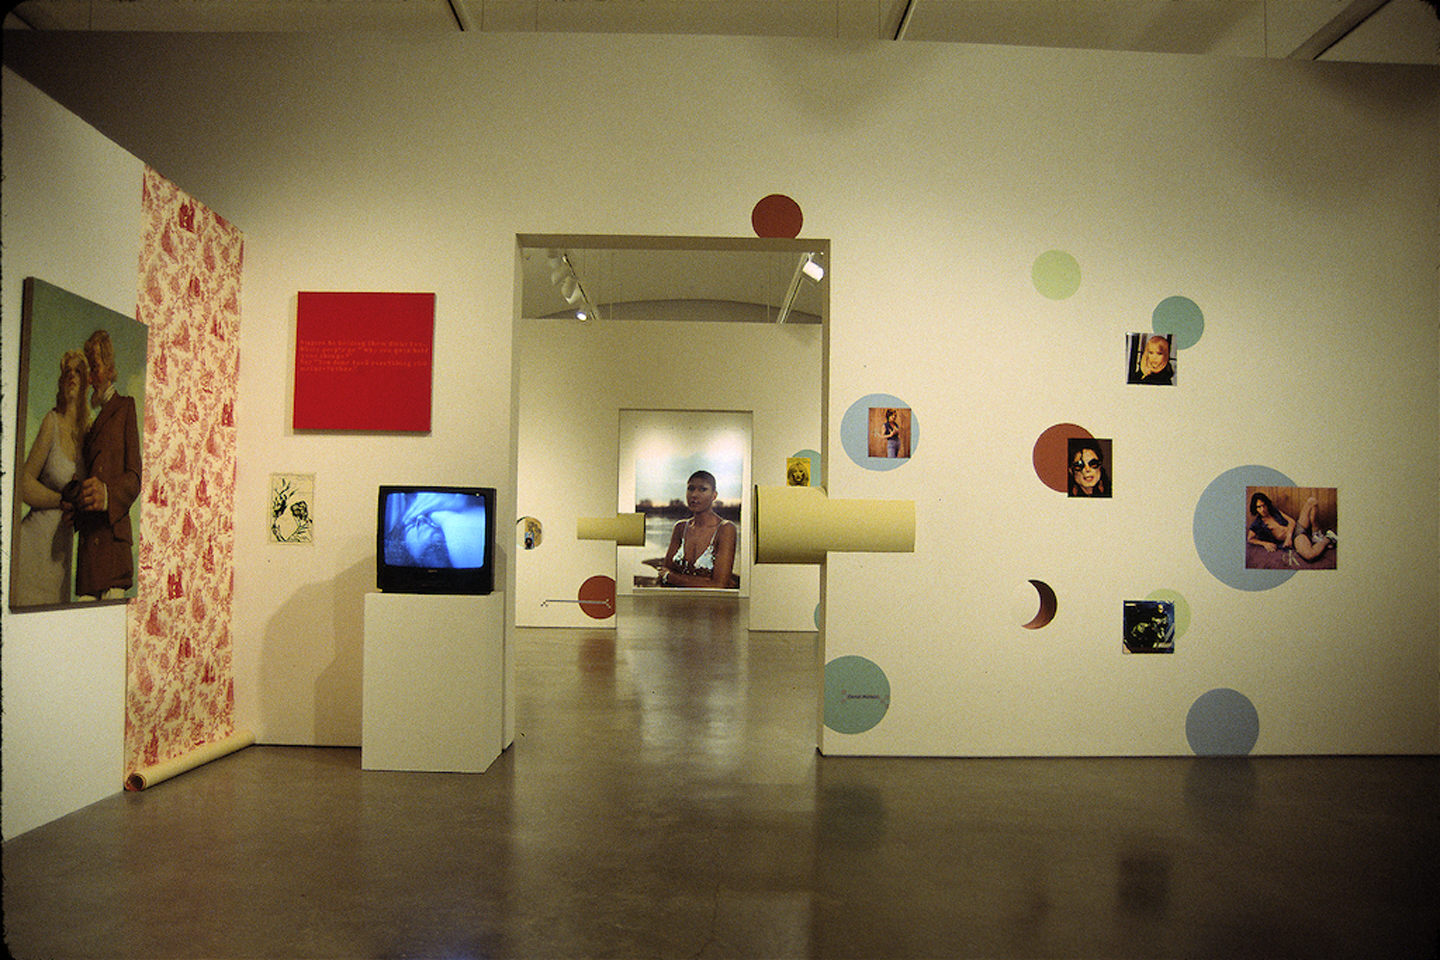 a/drift, installation view at Center for Curatorial Studies Museum, Bard College, New York, 1996. Courtesy: Center for Curatorial Studies, Bard College. Photo: Joshua Decter